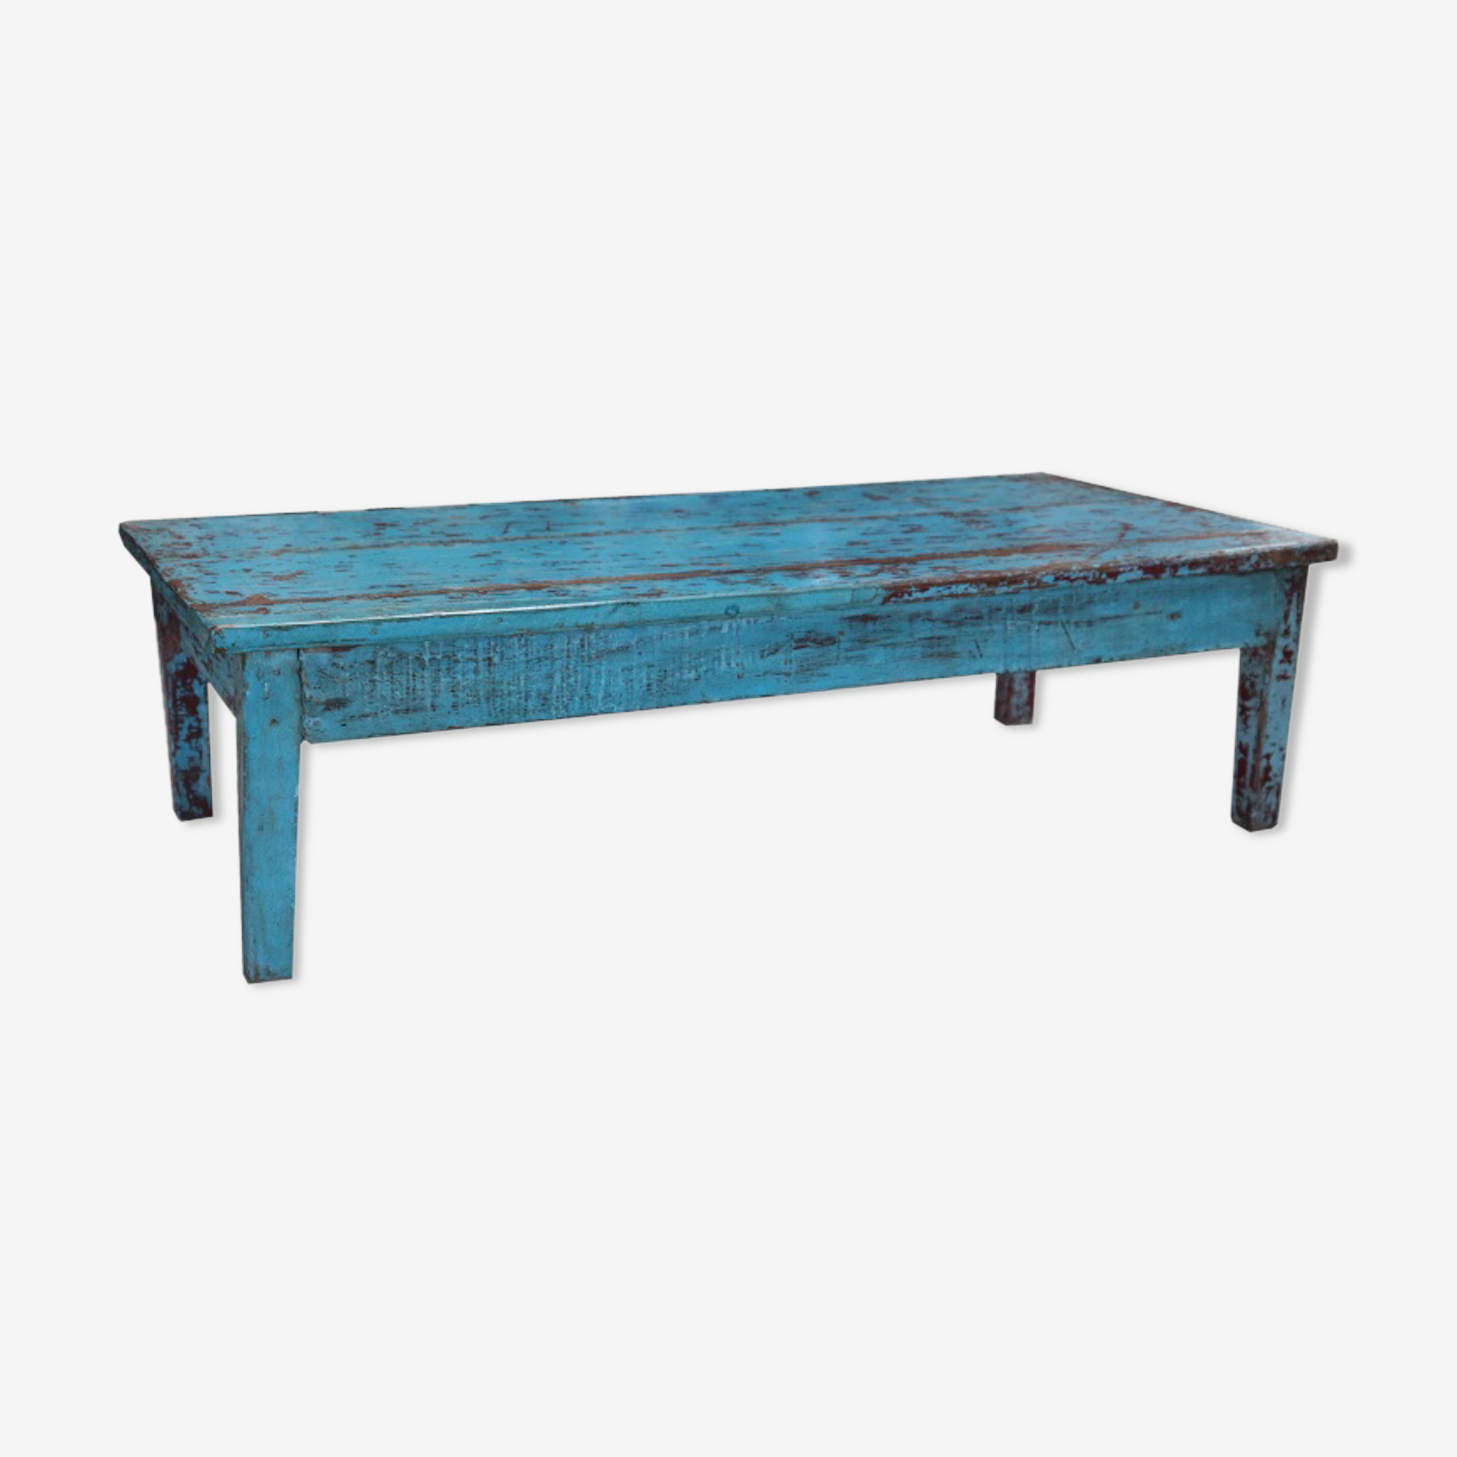 Former bench patina teak wood